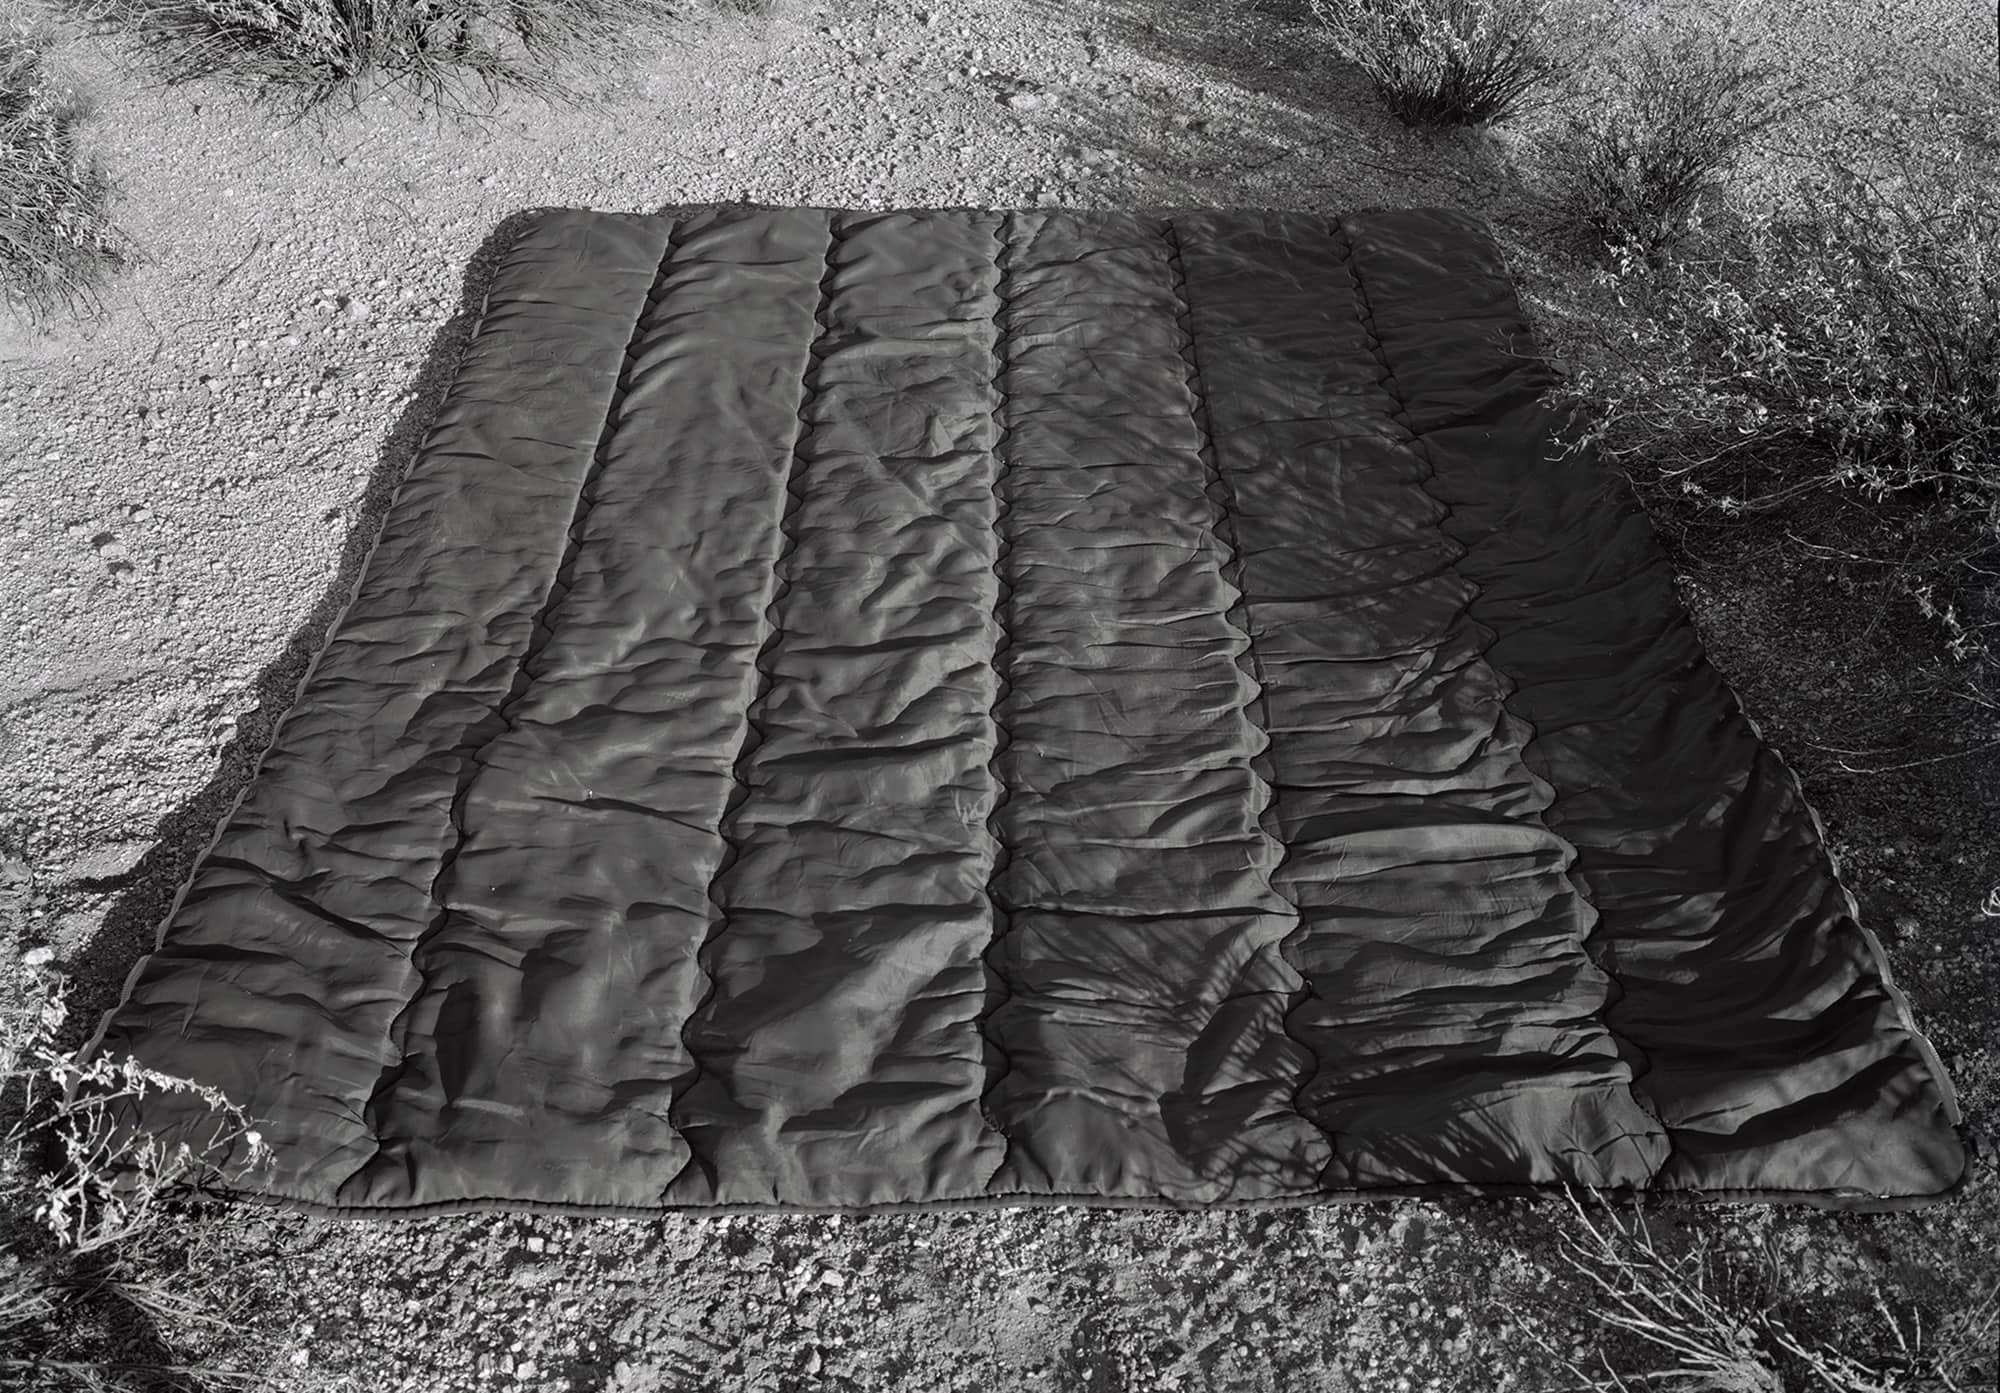 Sleeping Bag, Arizona, USA, 1975